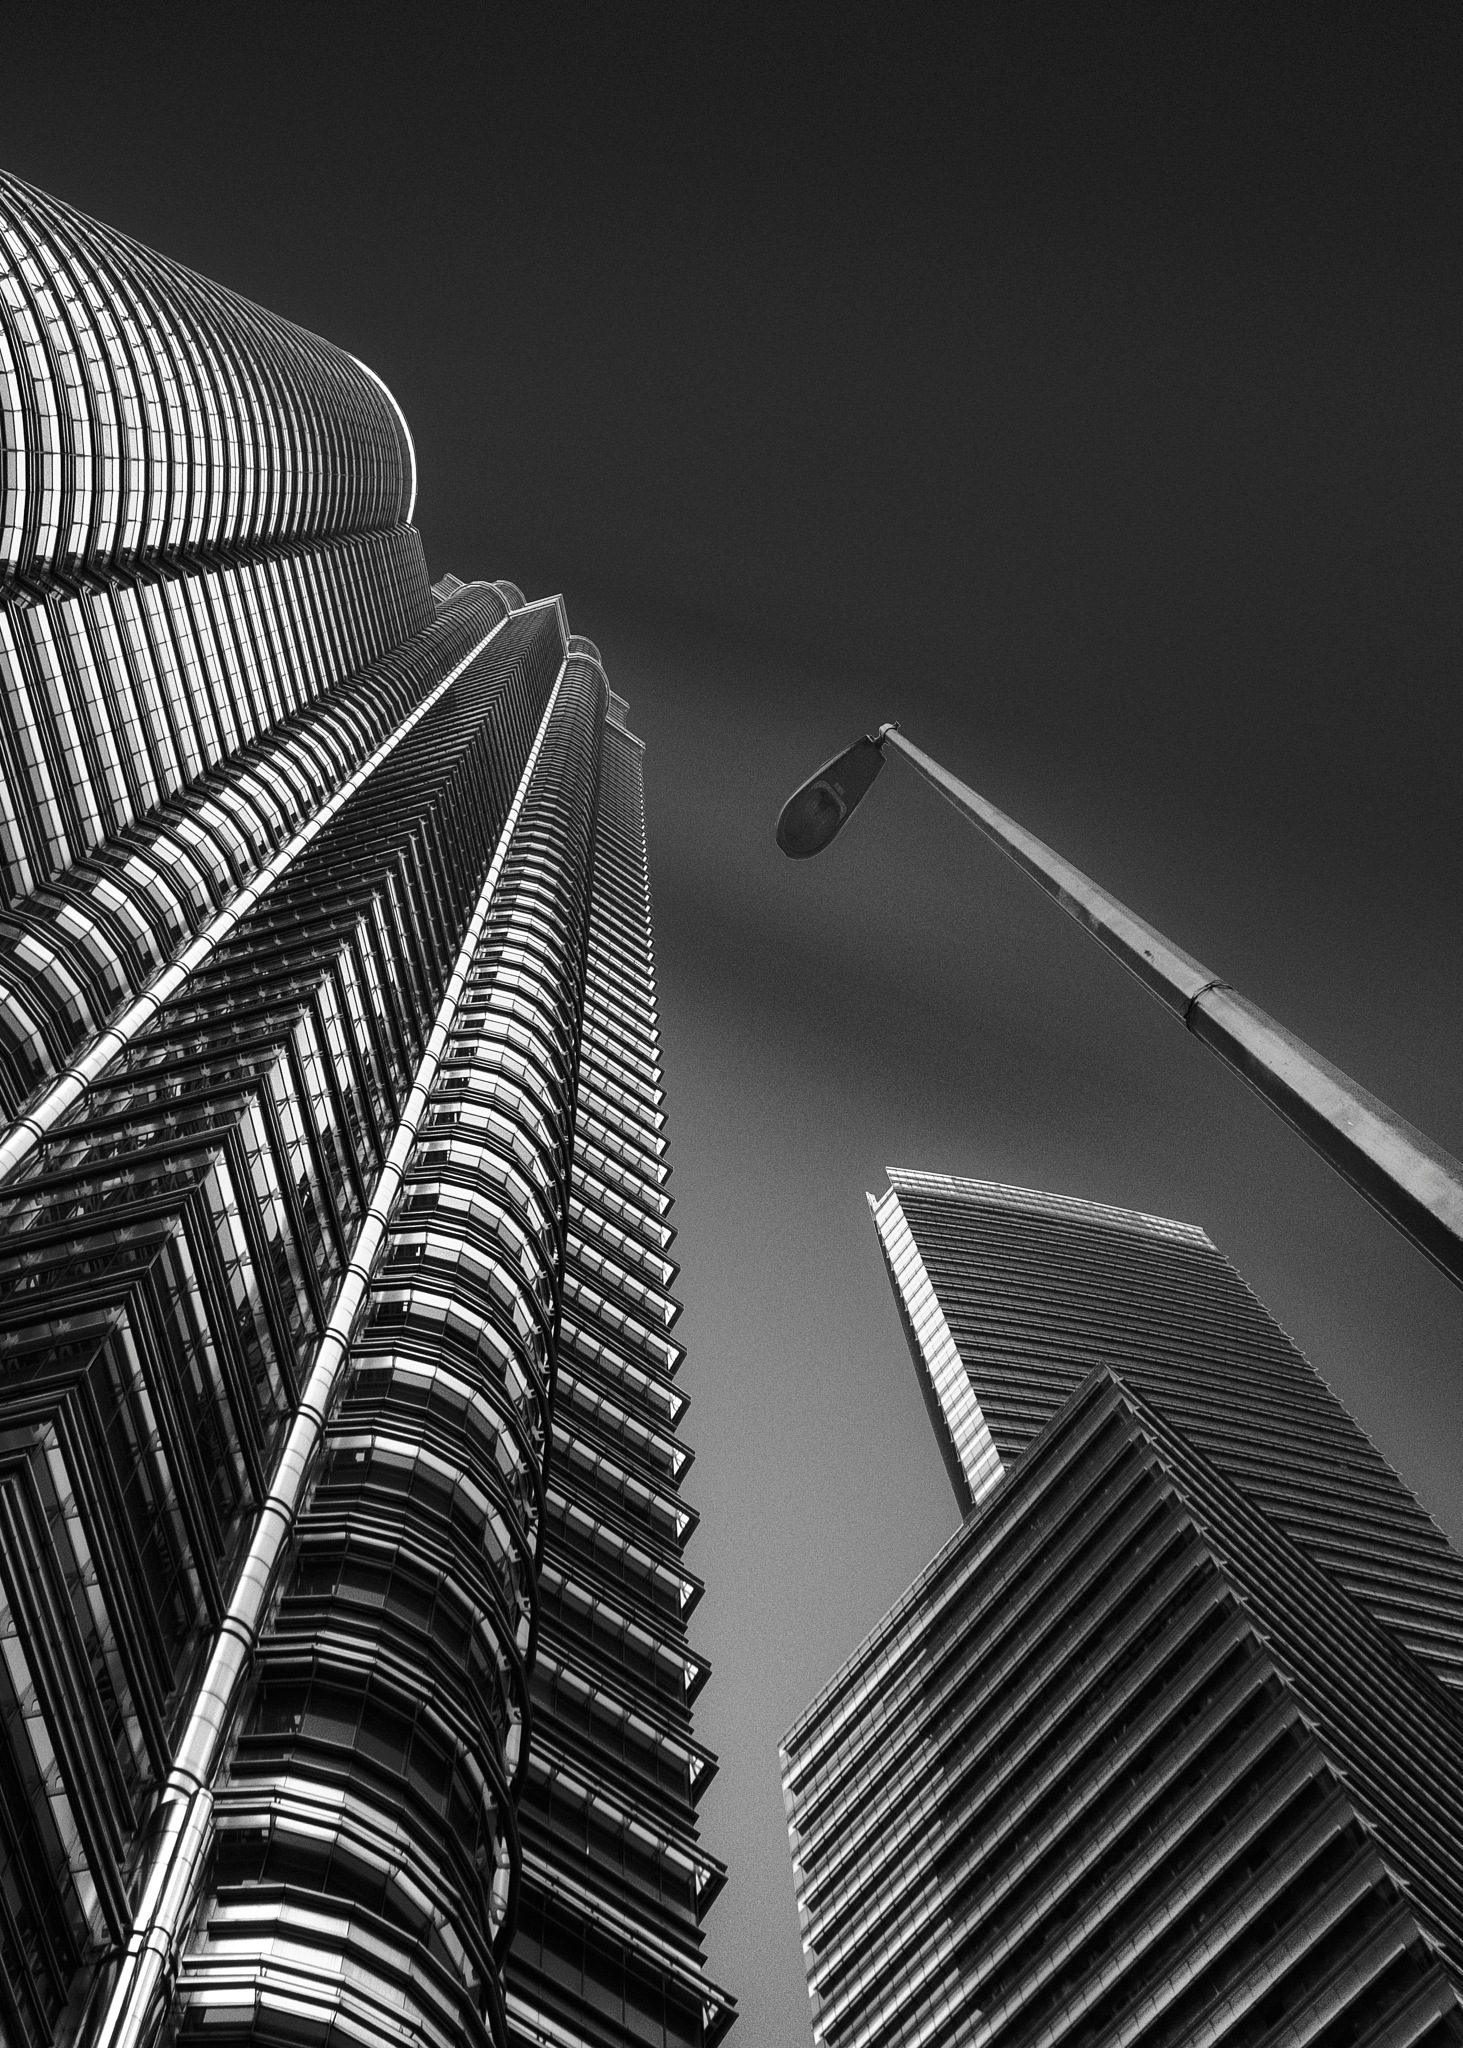 The petronas by Ahmed Thabet